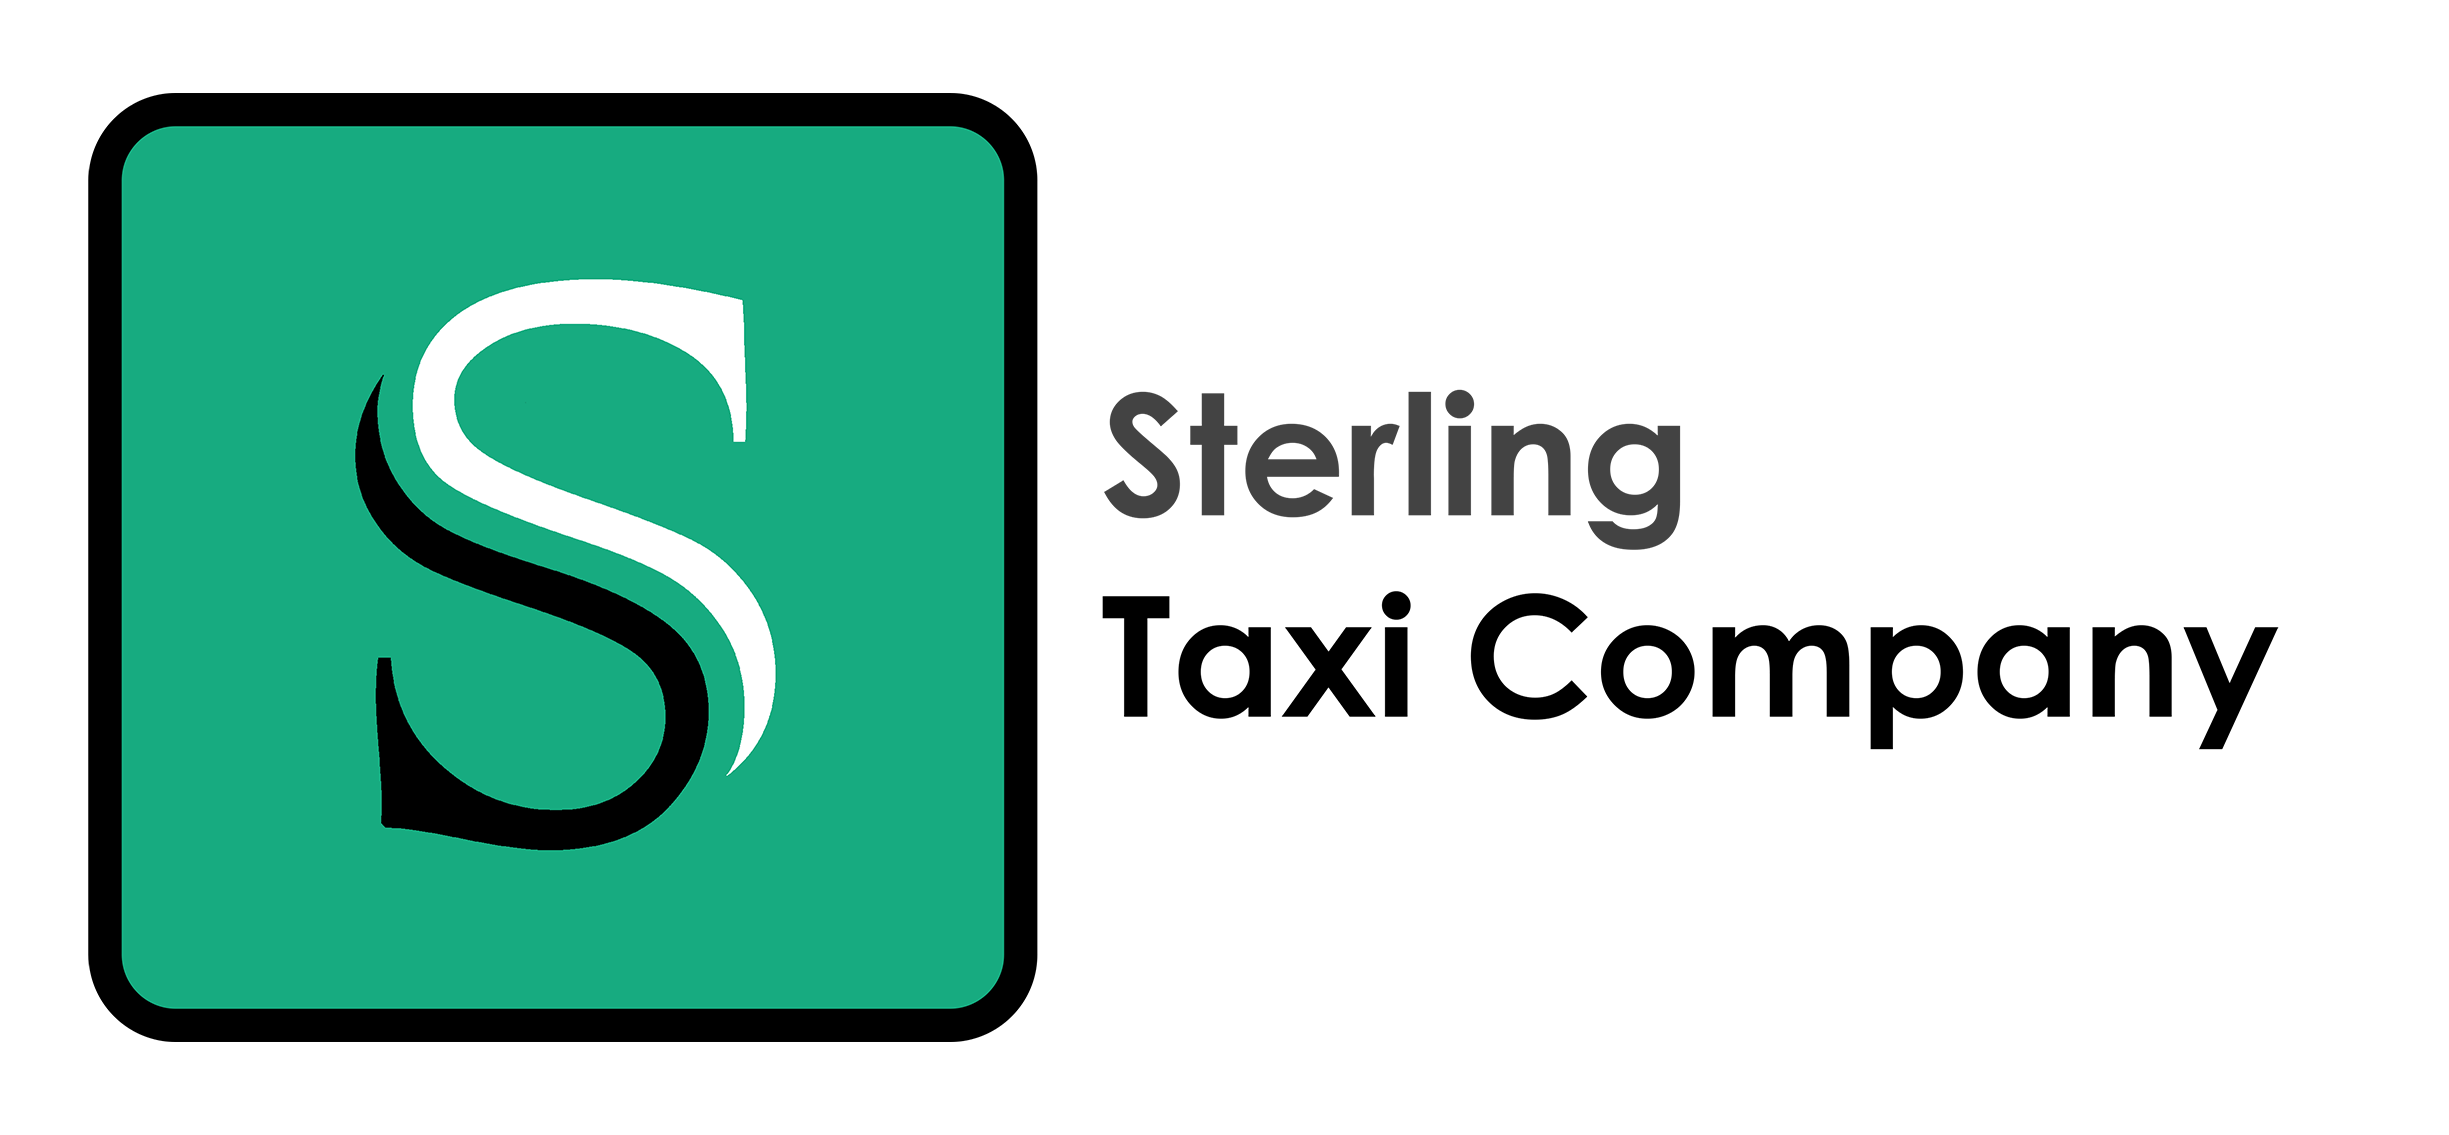 Sterling Taxi Company